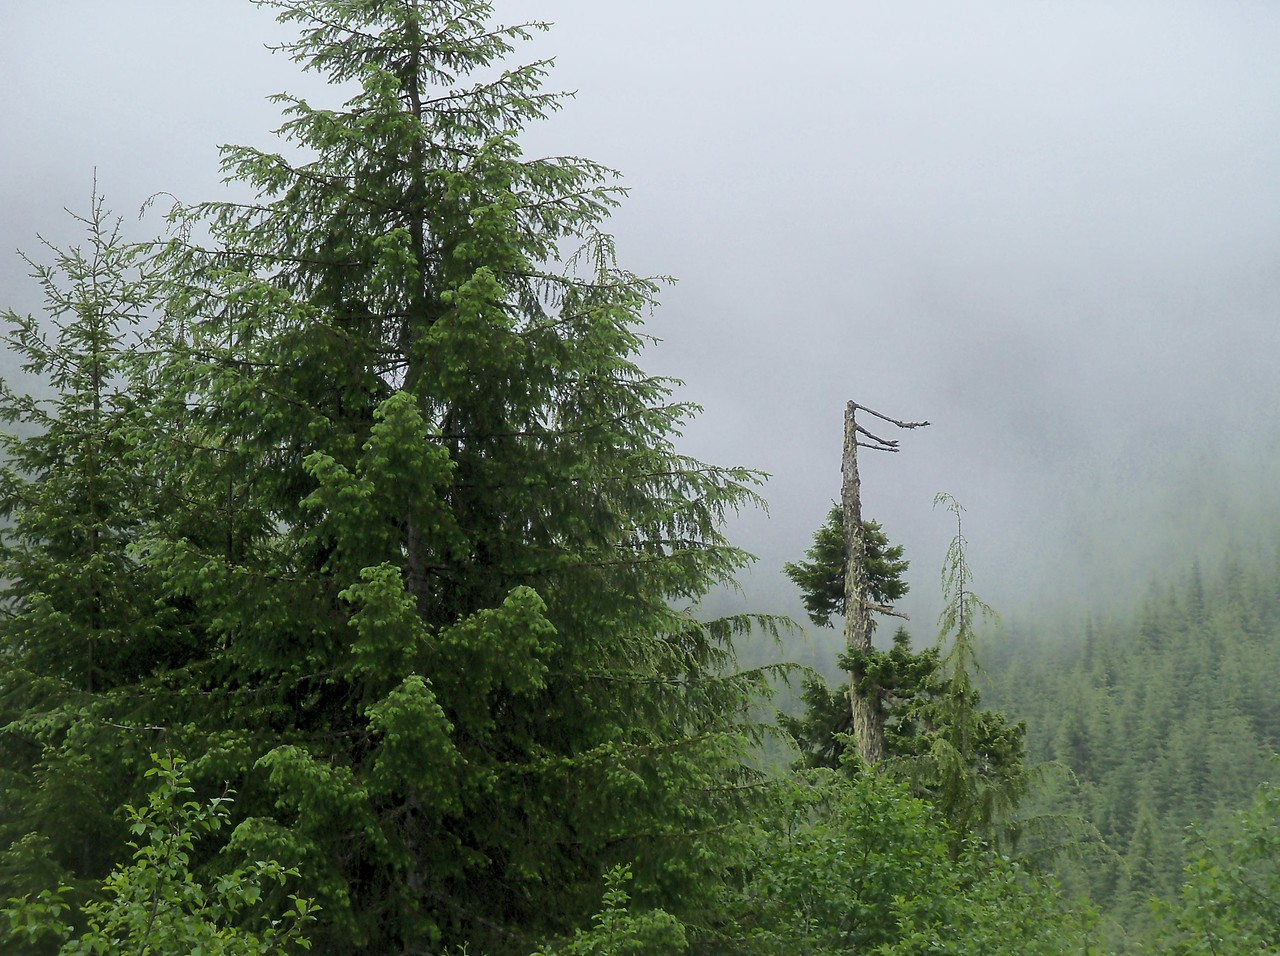 Friday June 29th.. Weather was cloudy in Shelton but became very wet as we rode into the mountains..